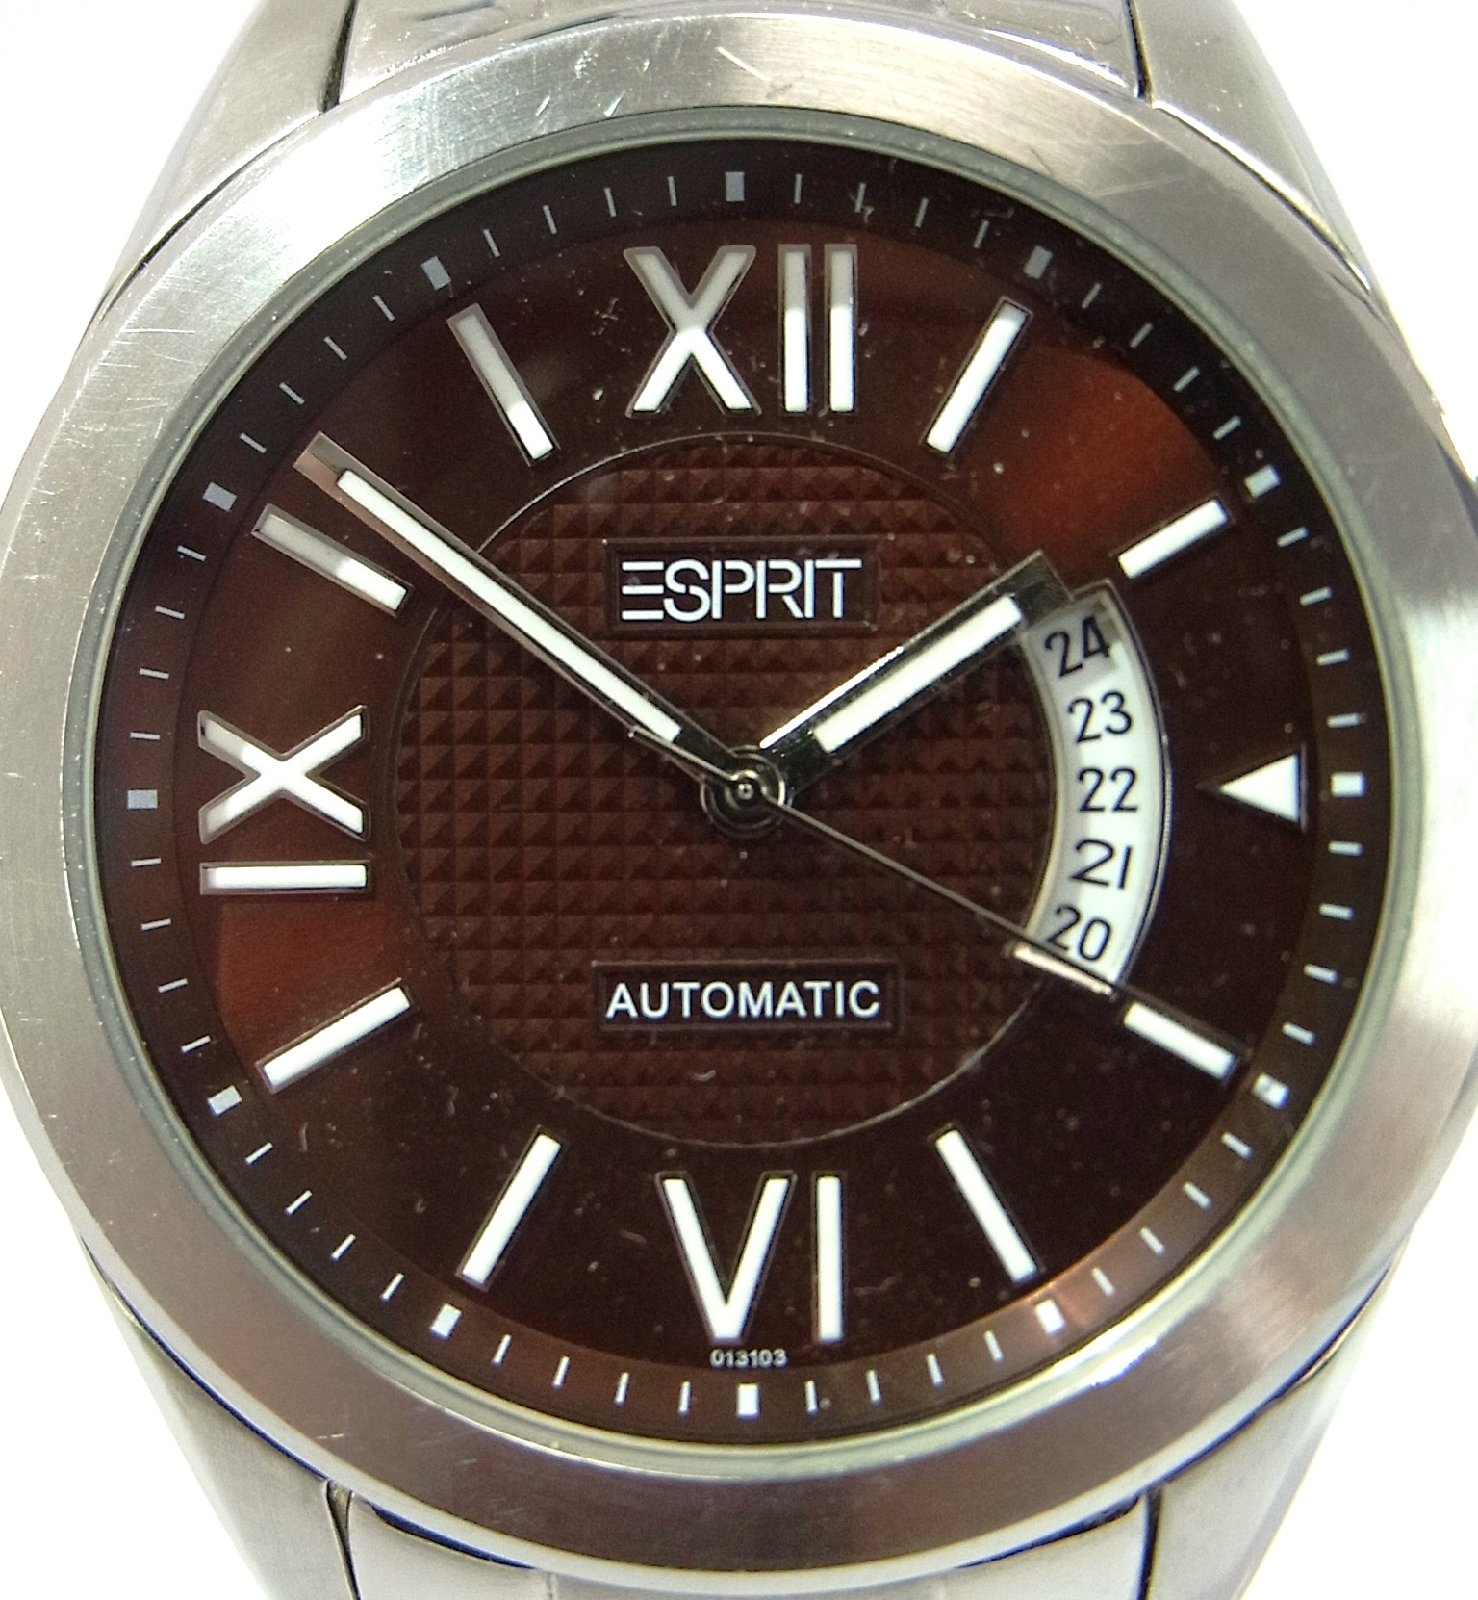 esprit herrenuhr wega 101311 braun automatic edelstahl uhr armbanduhr herren ebay. Black Bedroom Furniture Sets. Home Design Ideas